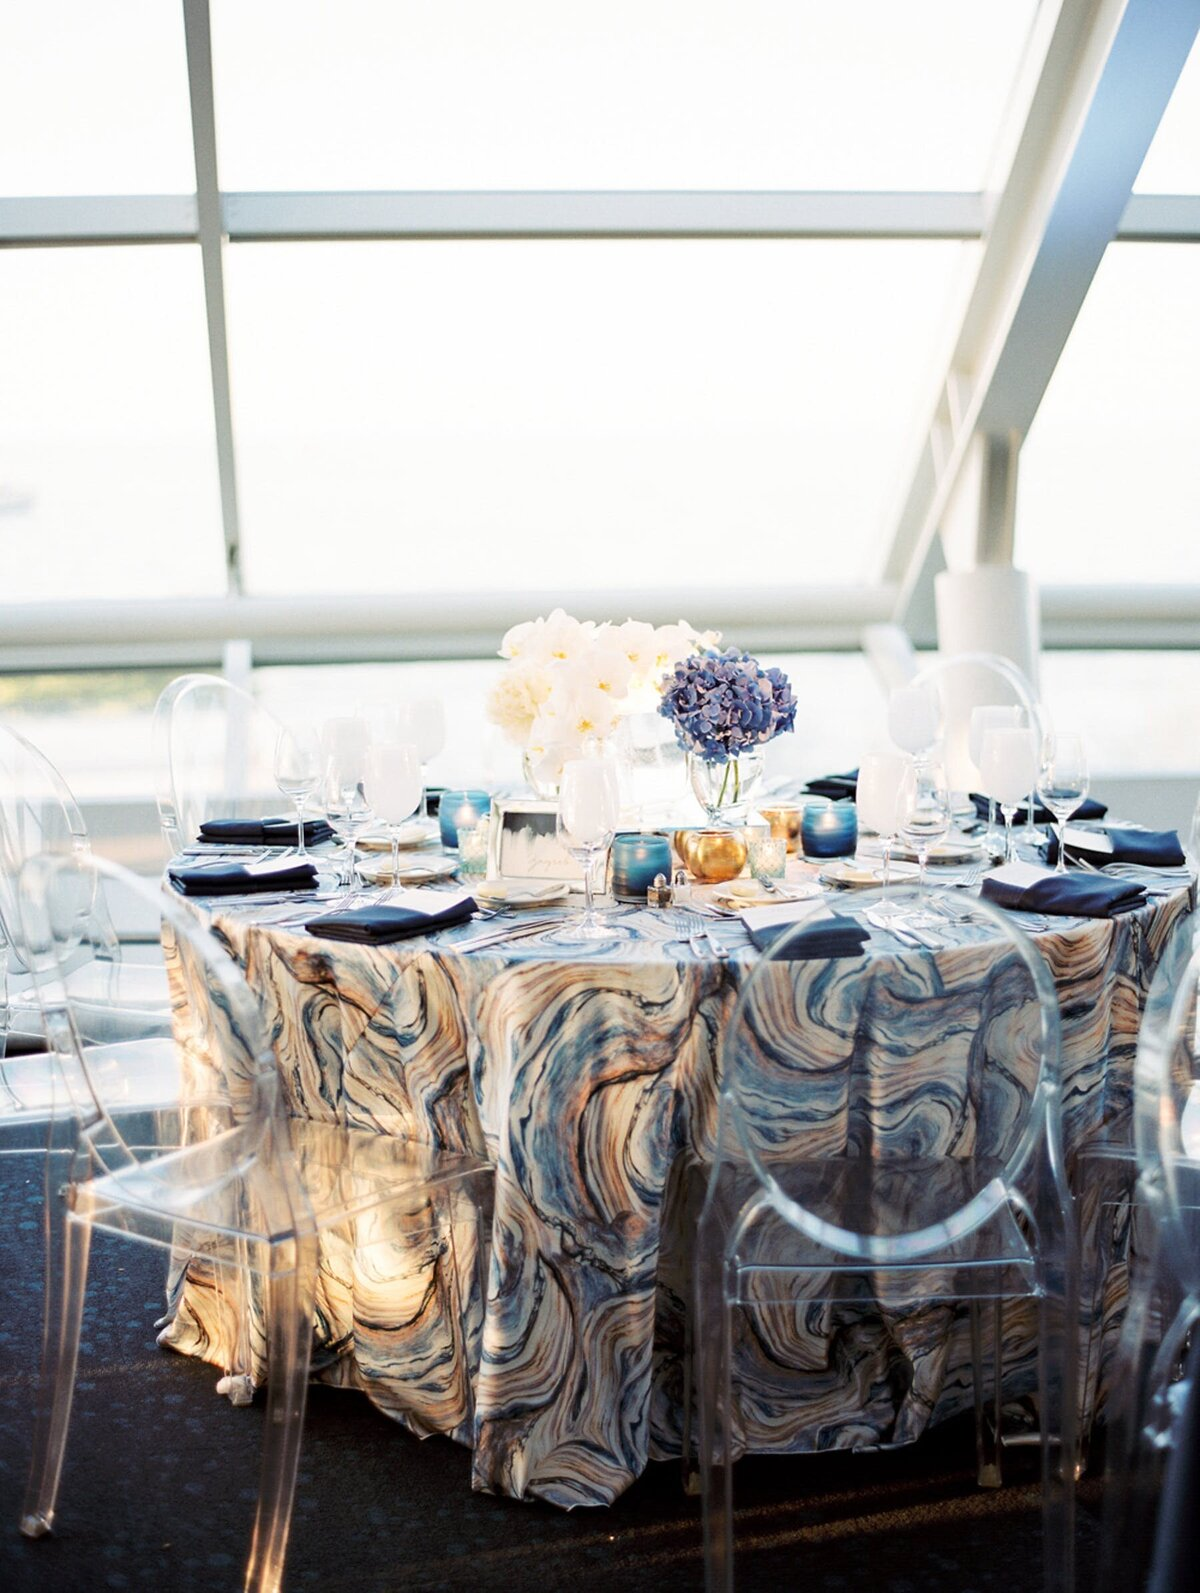 Reception table with blue, white, and gold table linen